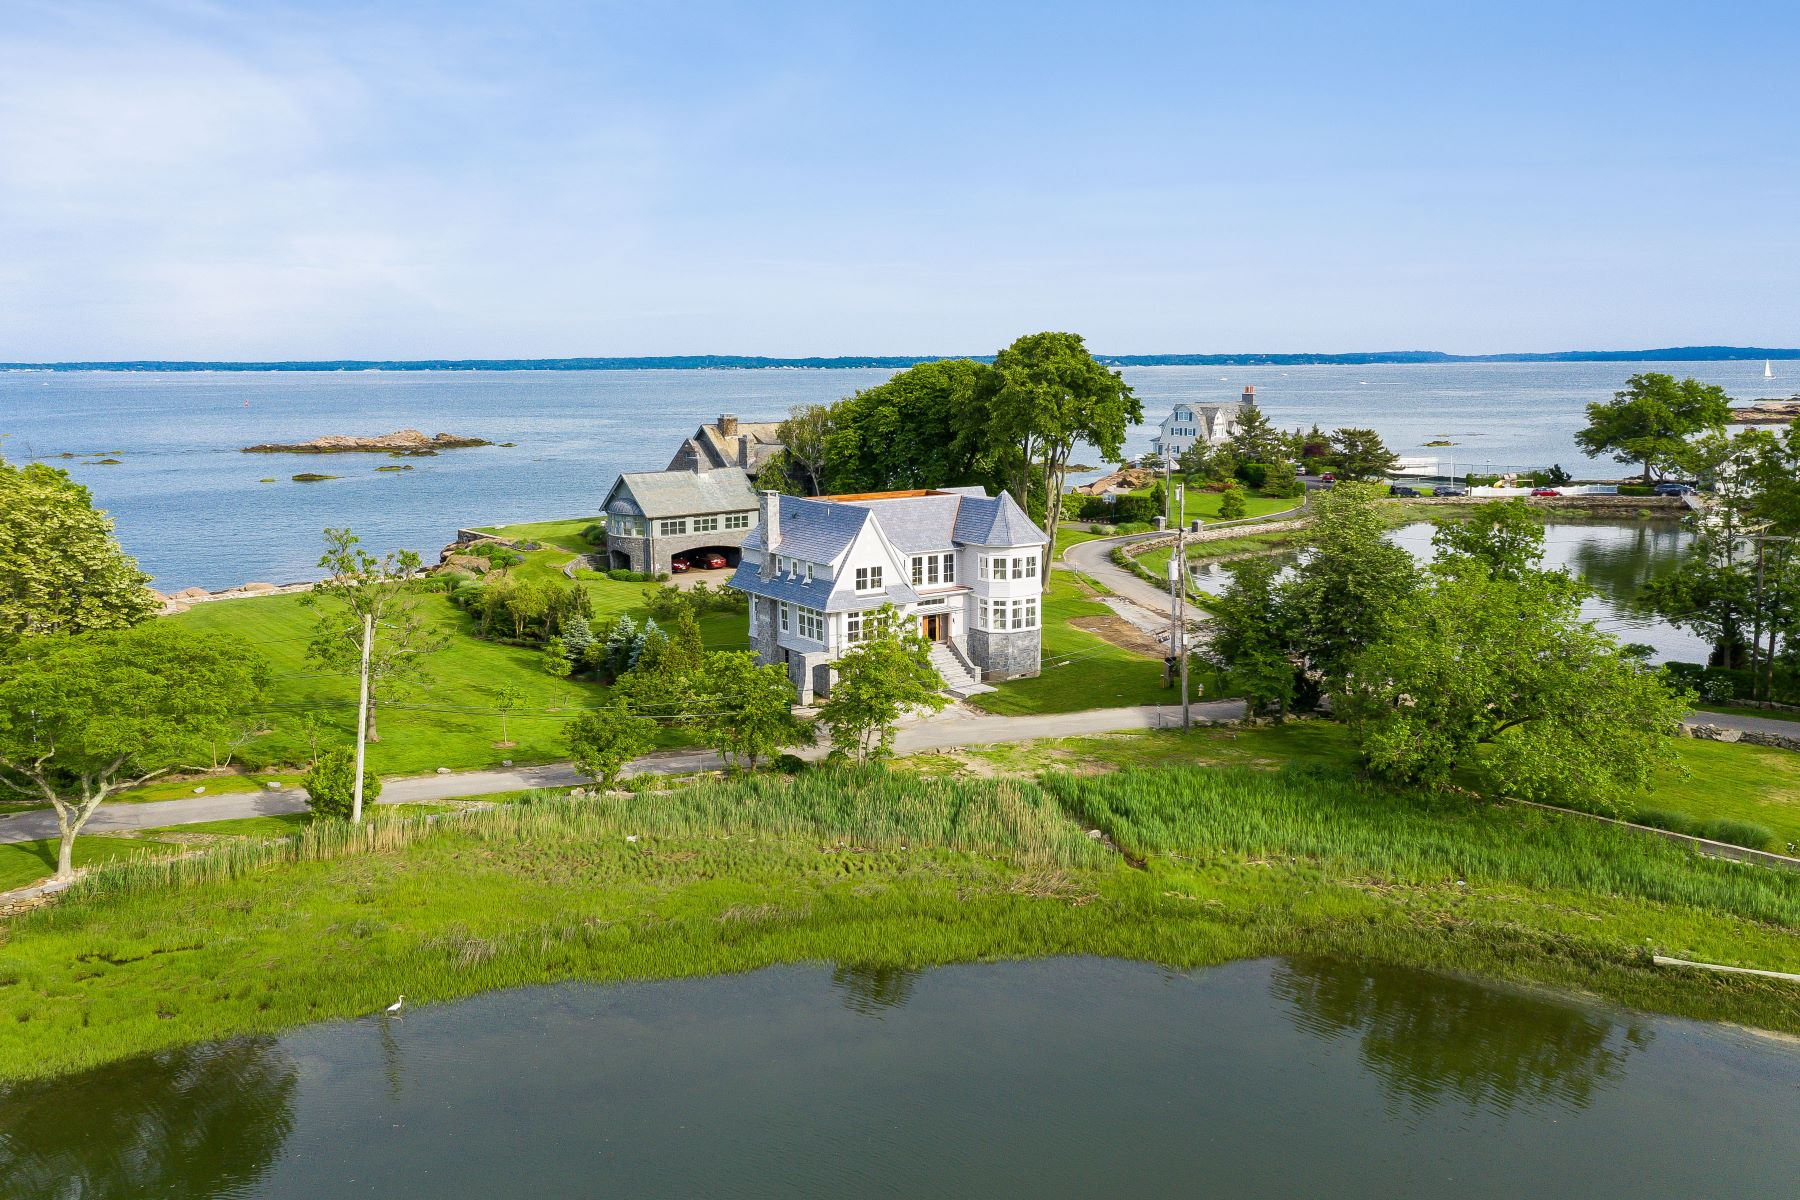 Single Family Homes for Sale at 12 Pine Island Road Rye, New York 10580 United States